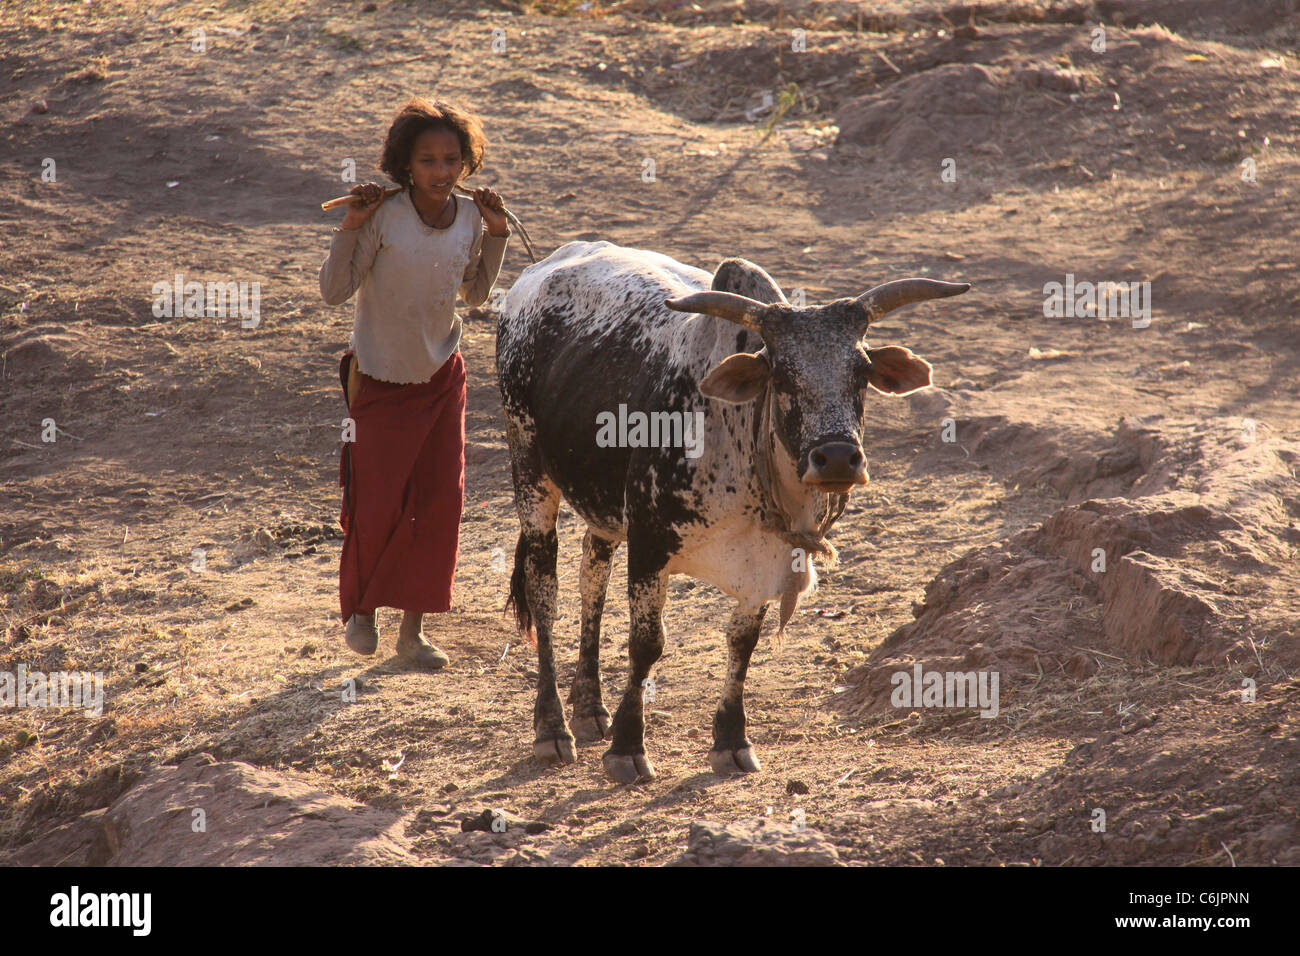 Young girl herding a bull in rural Ethiopia - Stock Image